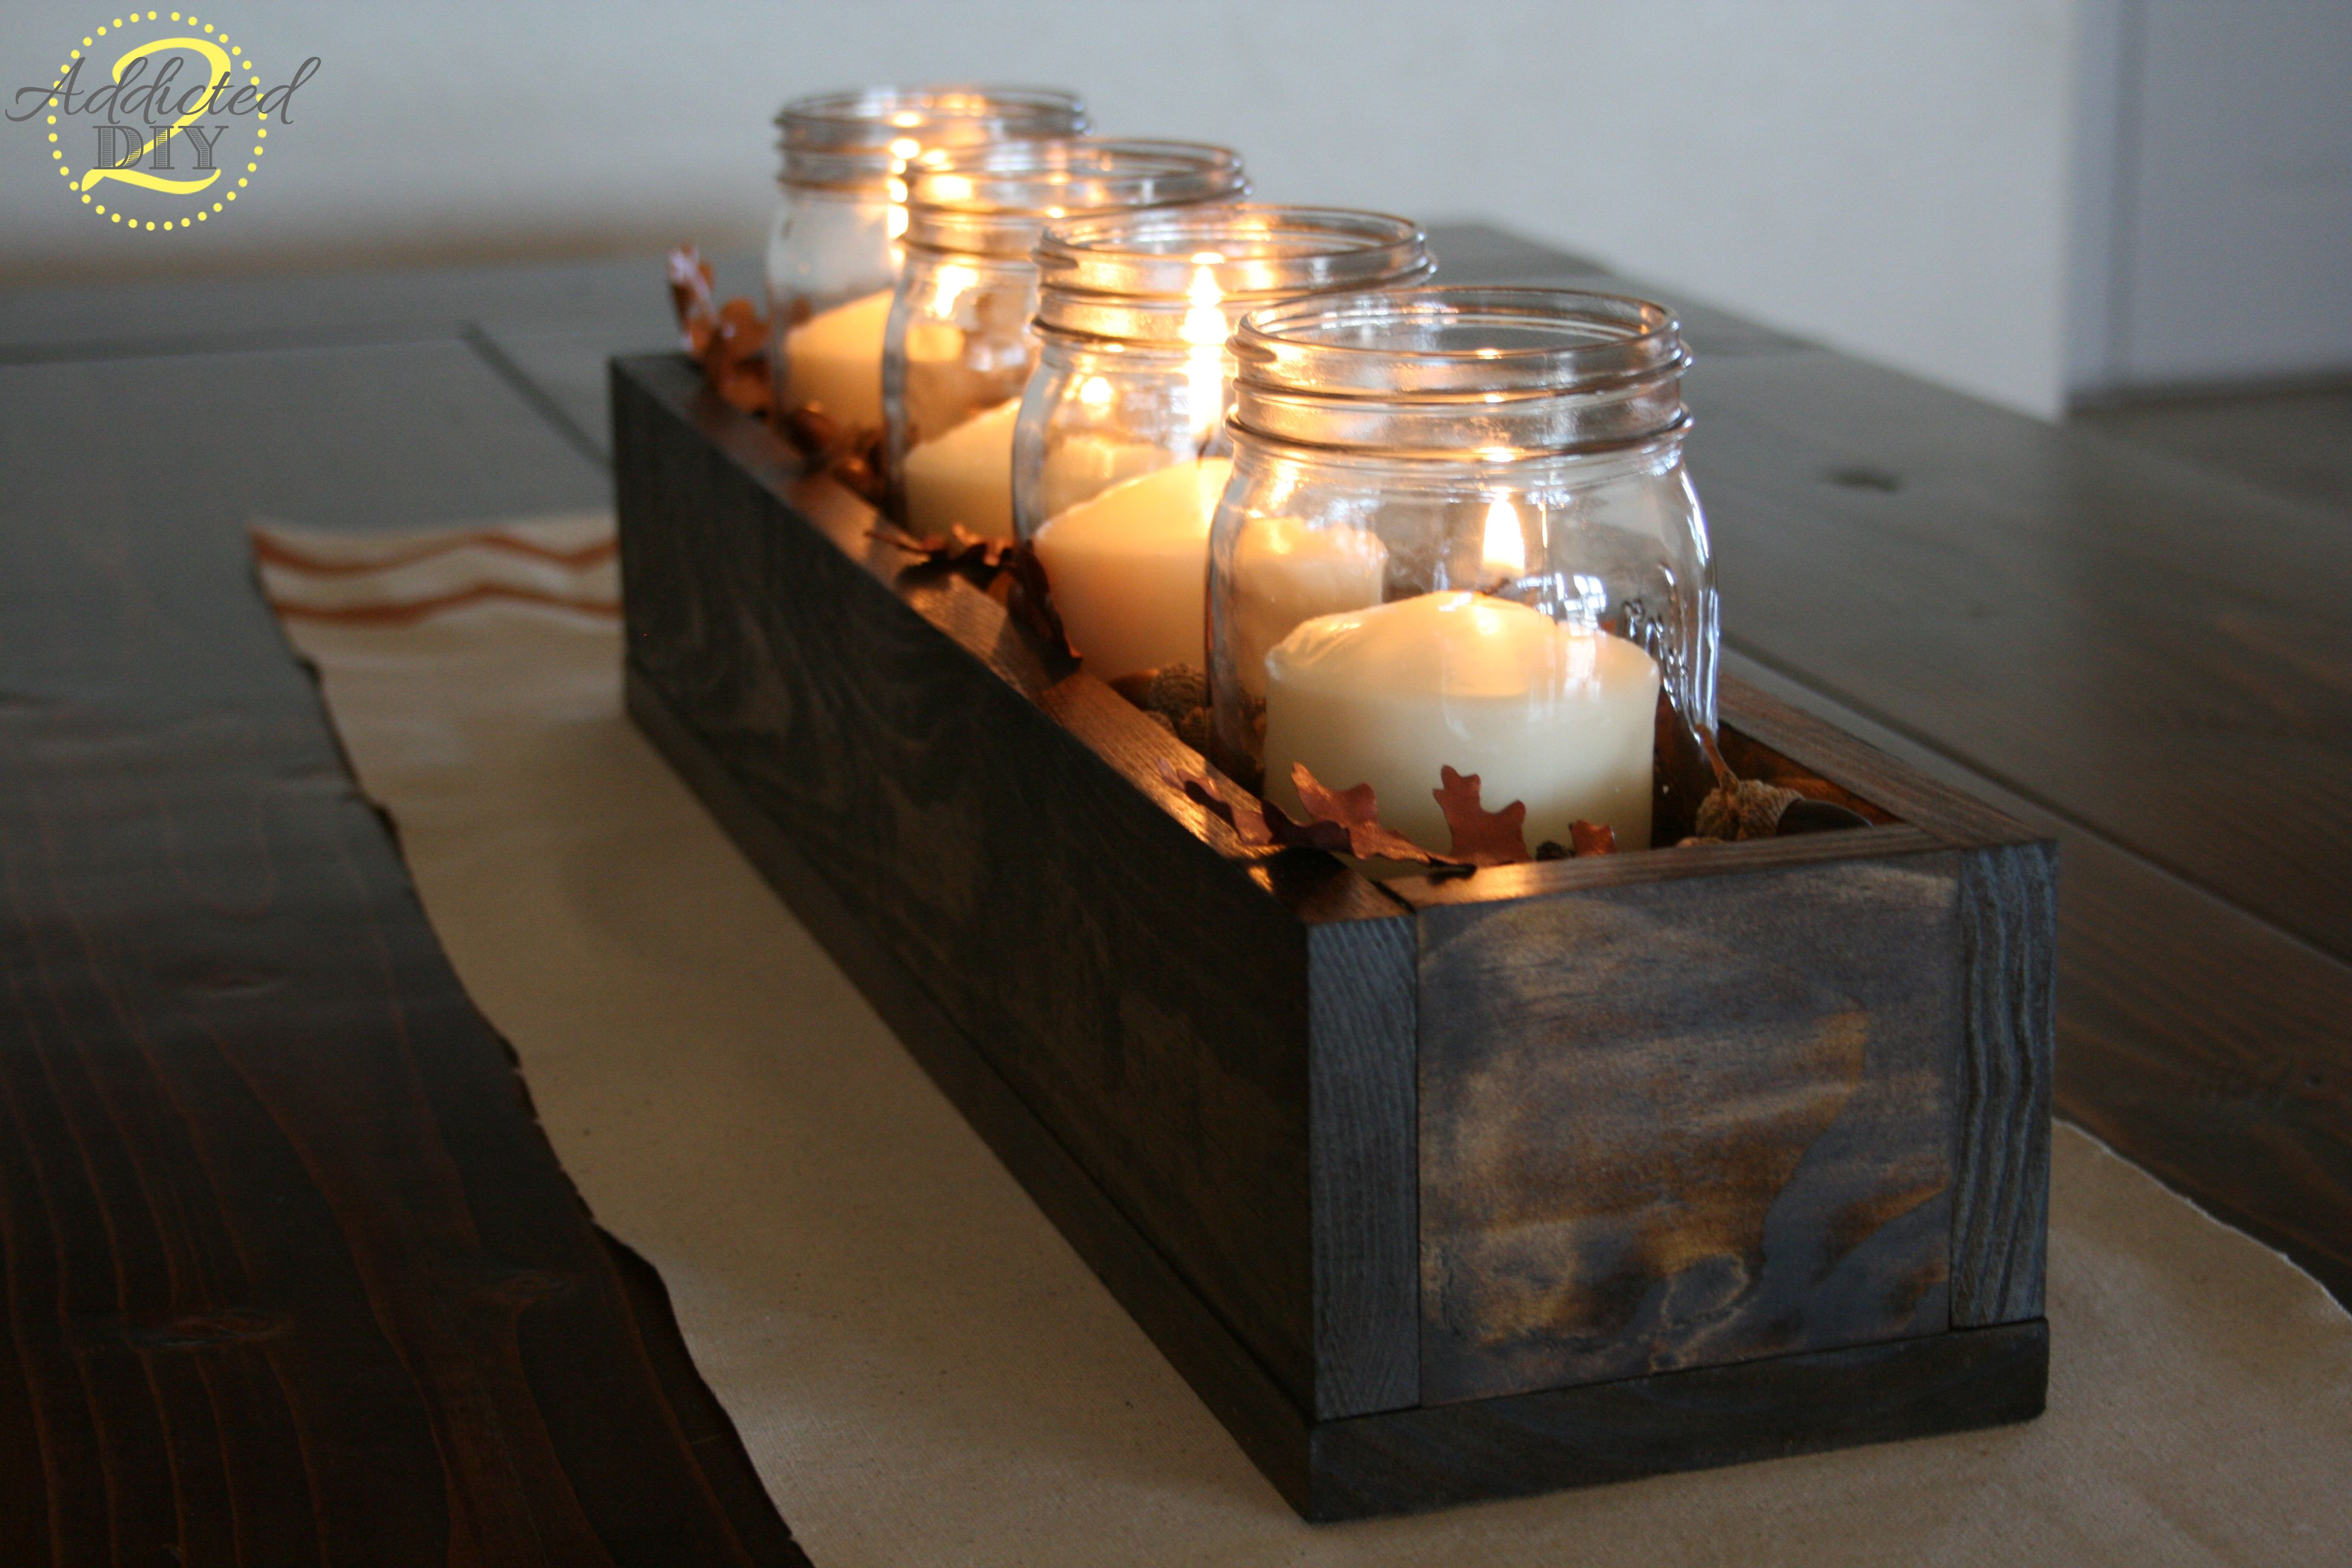 A DIY Mason Jar Candle Centerpiece Tutorial. Decorate with a fresh take on mason jar decor. The dark wood with fall leaf accents and a chevron runner are just the perfect fall touch!